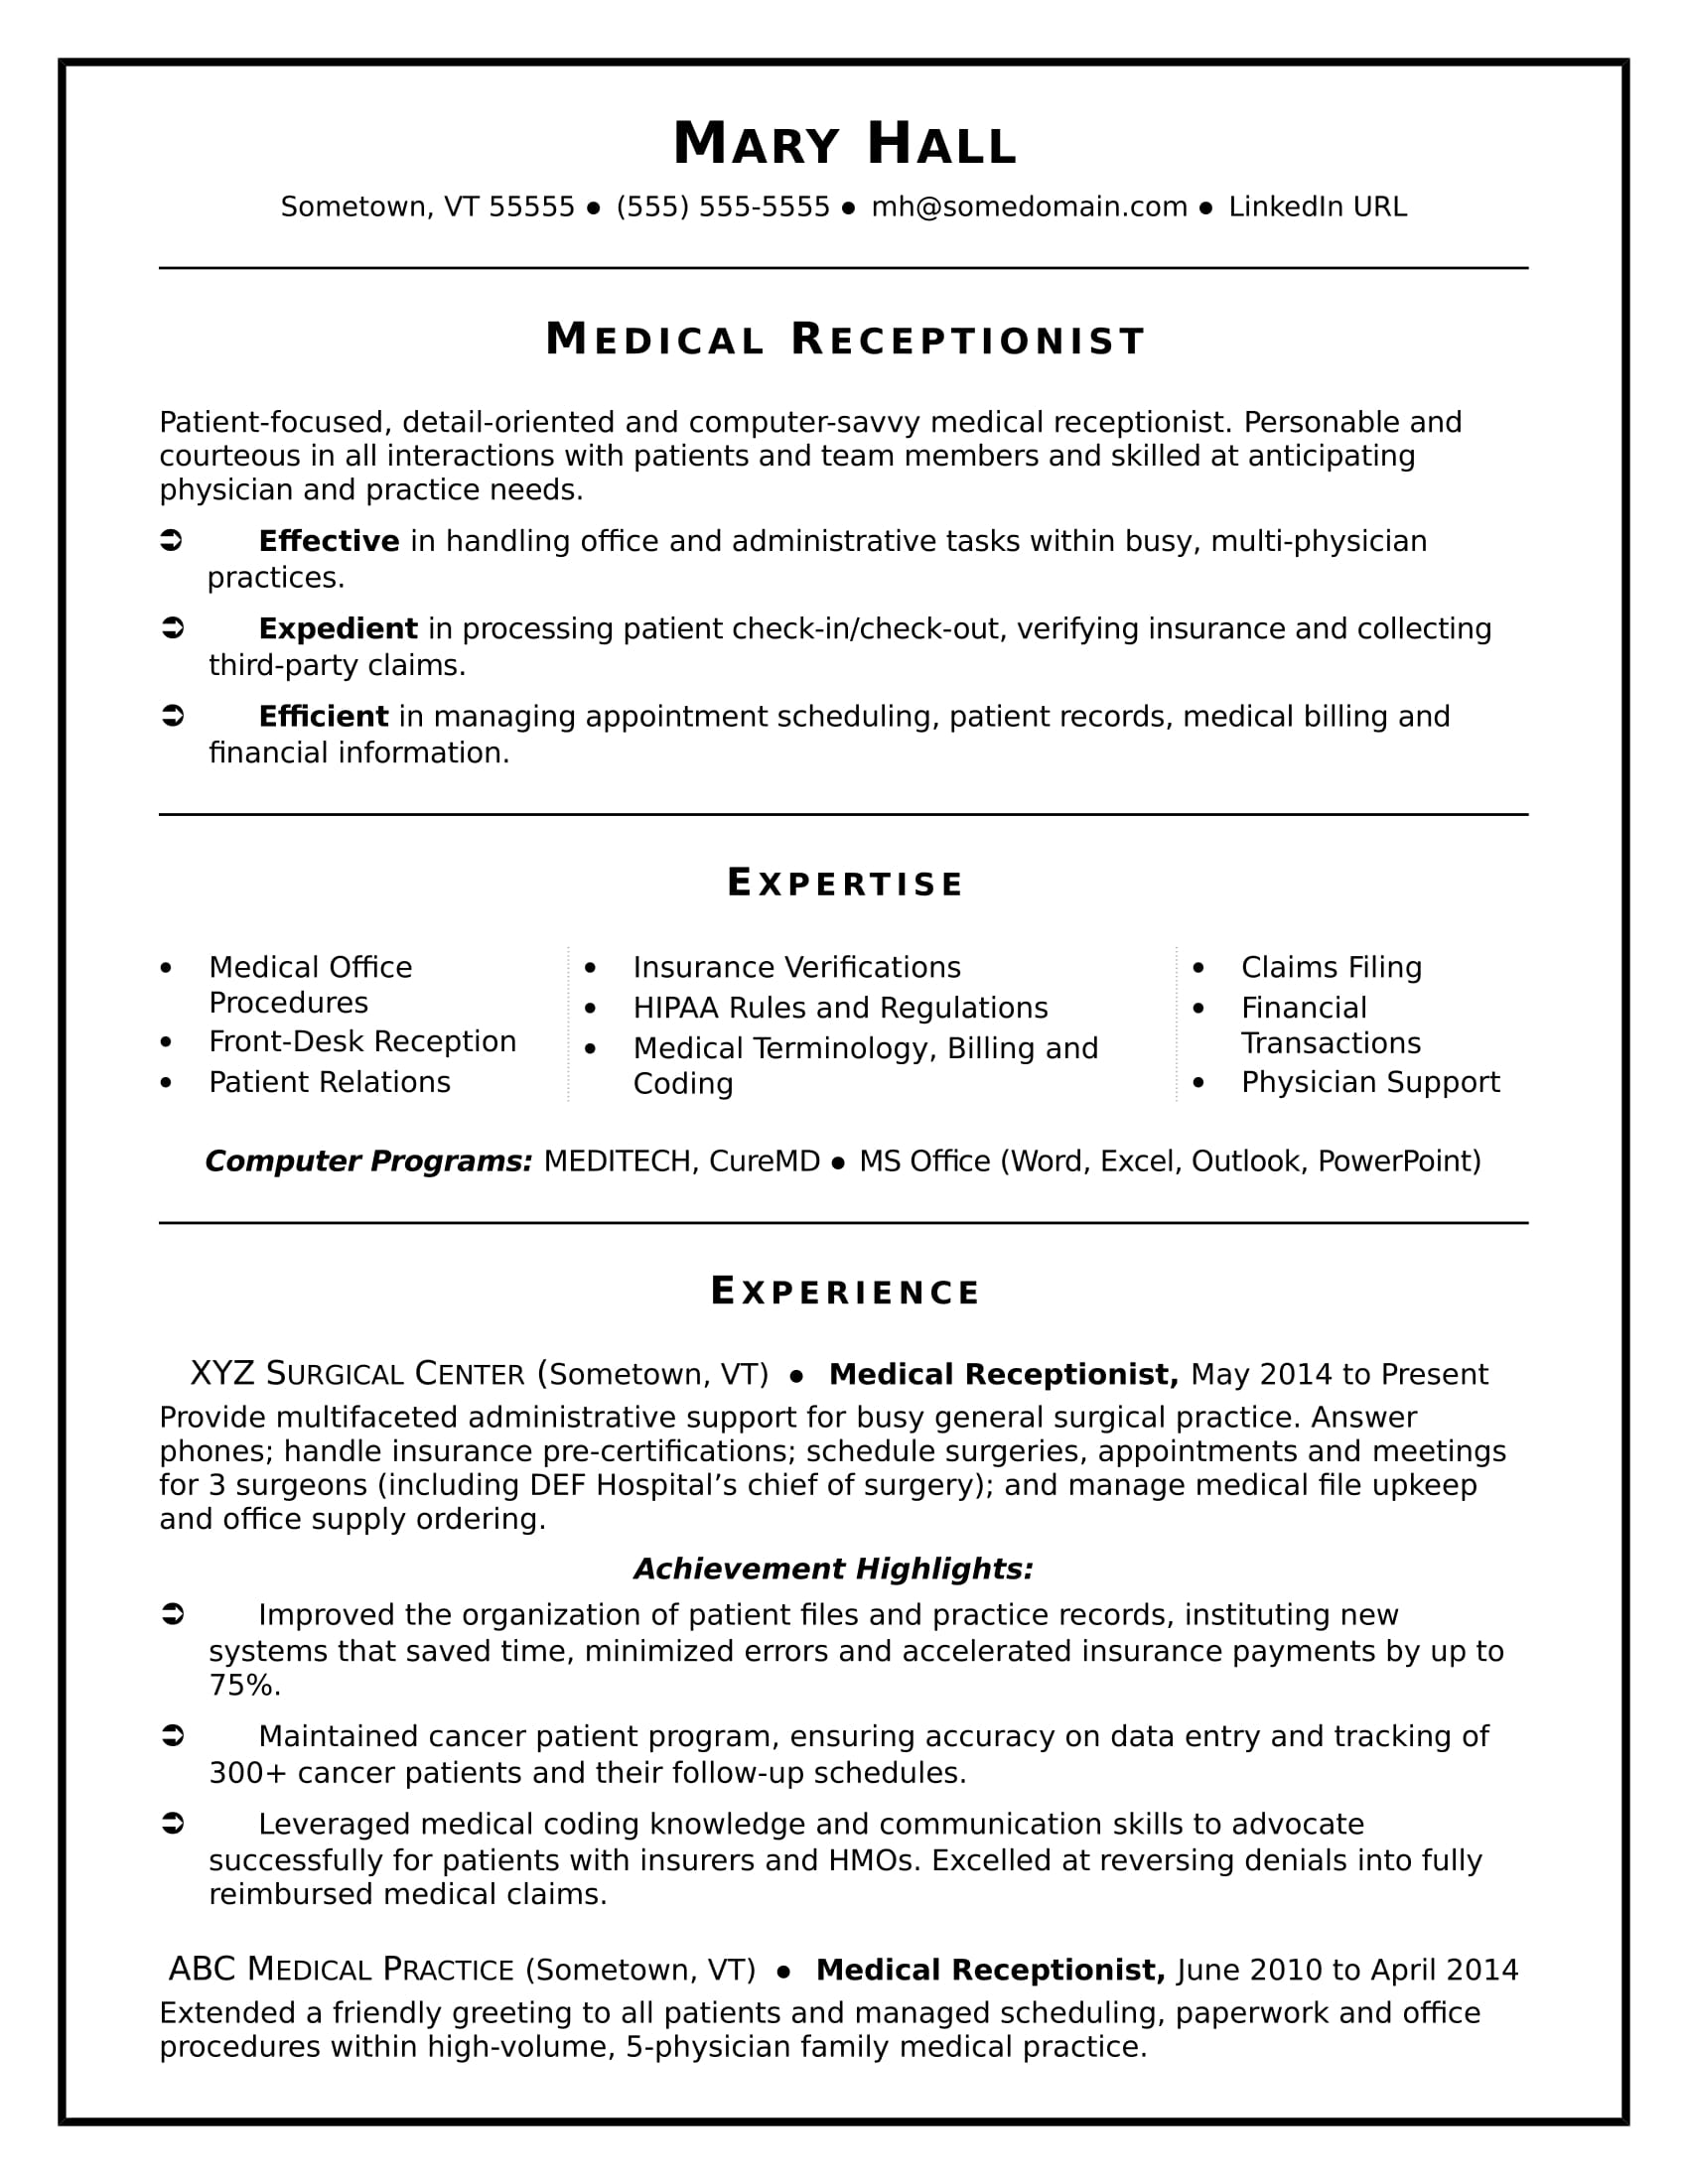 Medical Receptionist Resume Sample  Resume Examples Receptionist